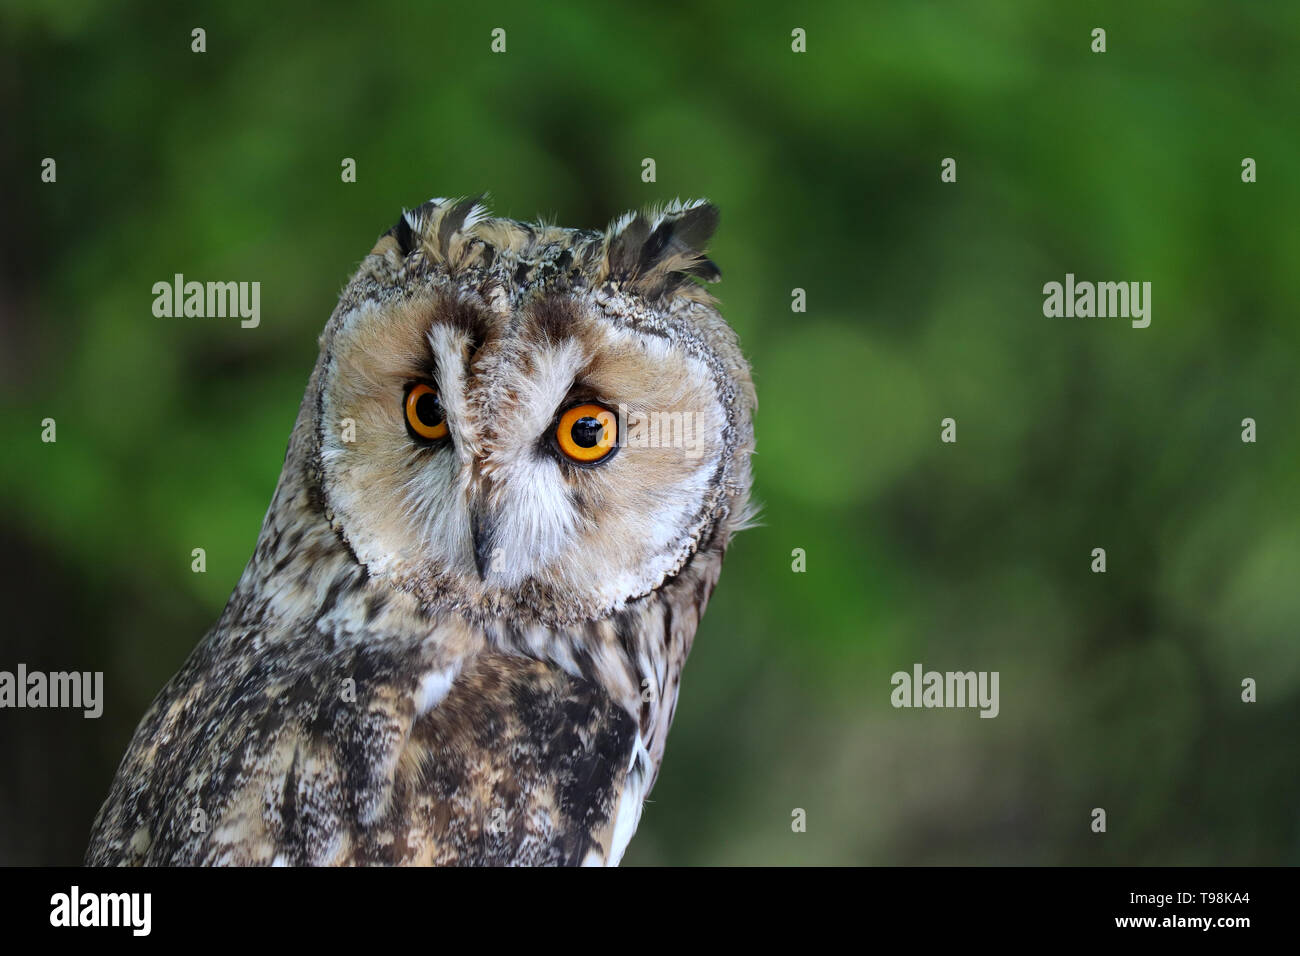 Owl portrait on green blurred background. Cute long-eared owl in a summer forest, nocturnal bird Stock Photo